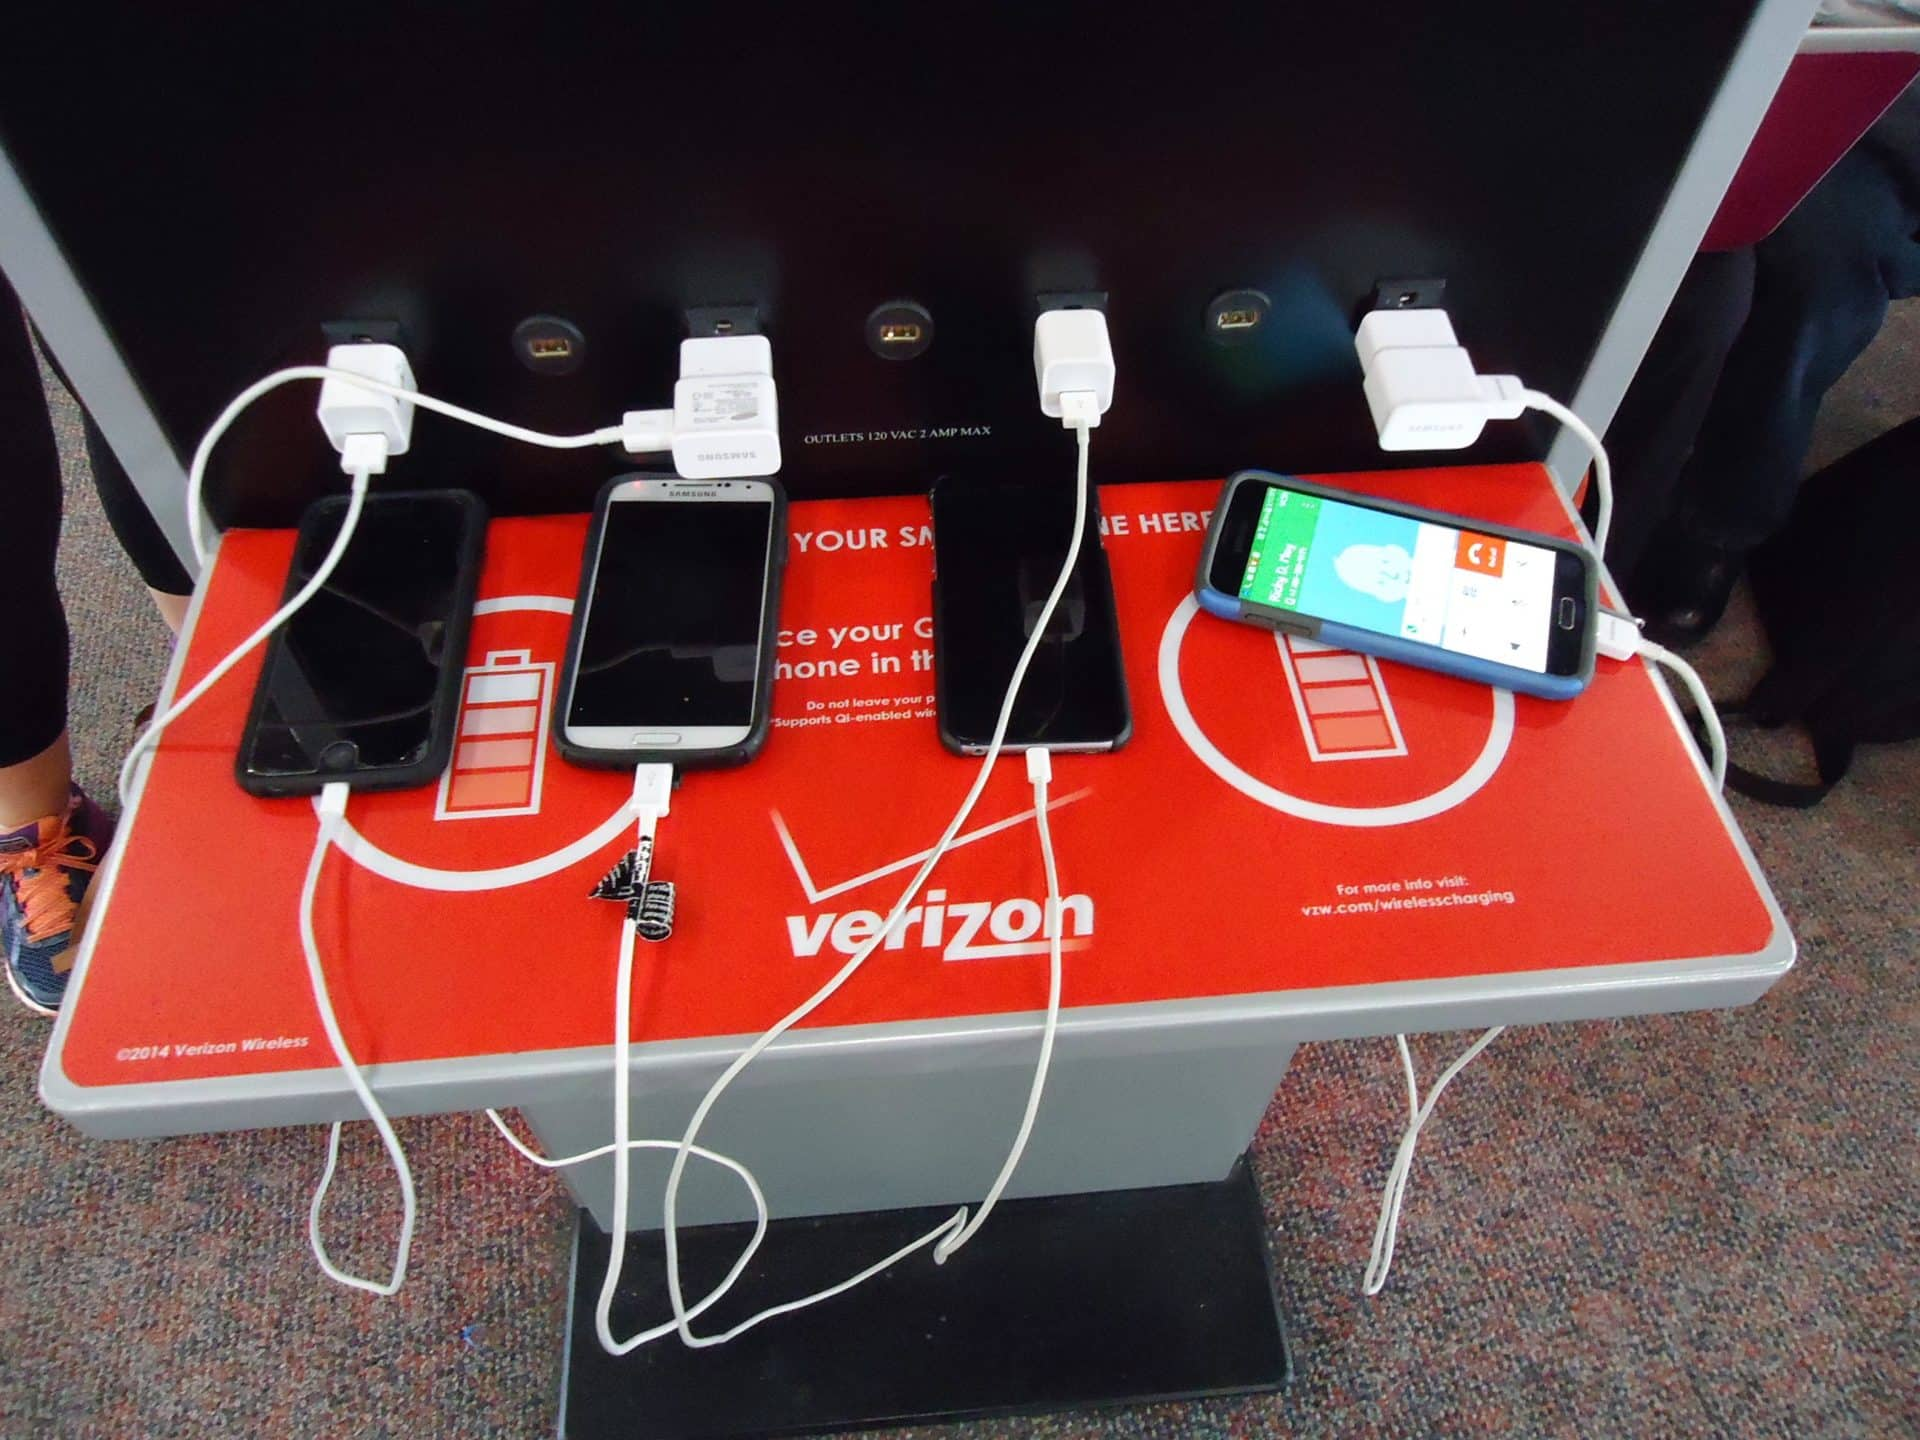 Phones are being charged with cables and plugs in an airport lounge